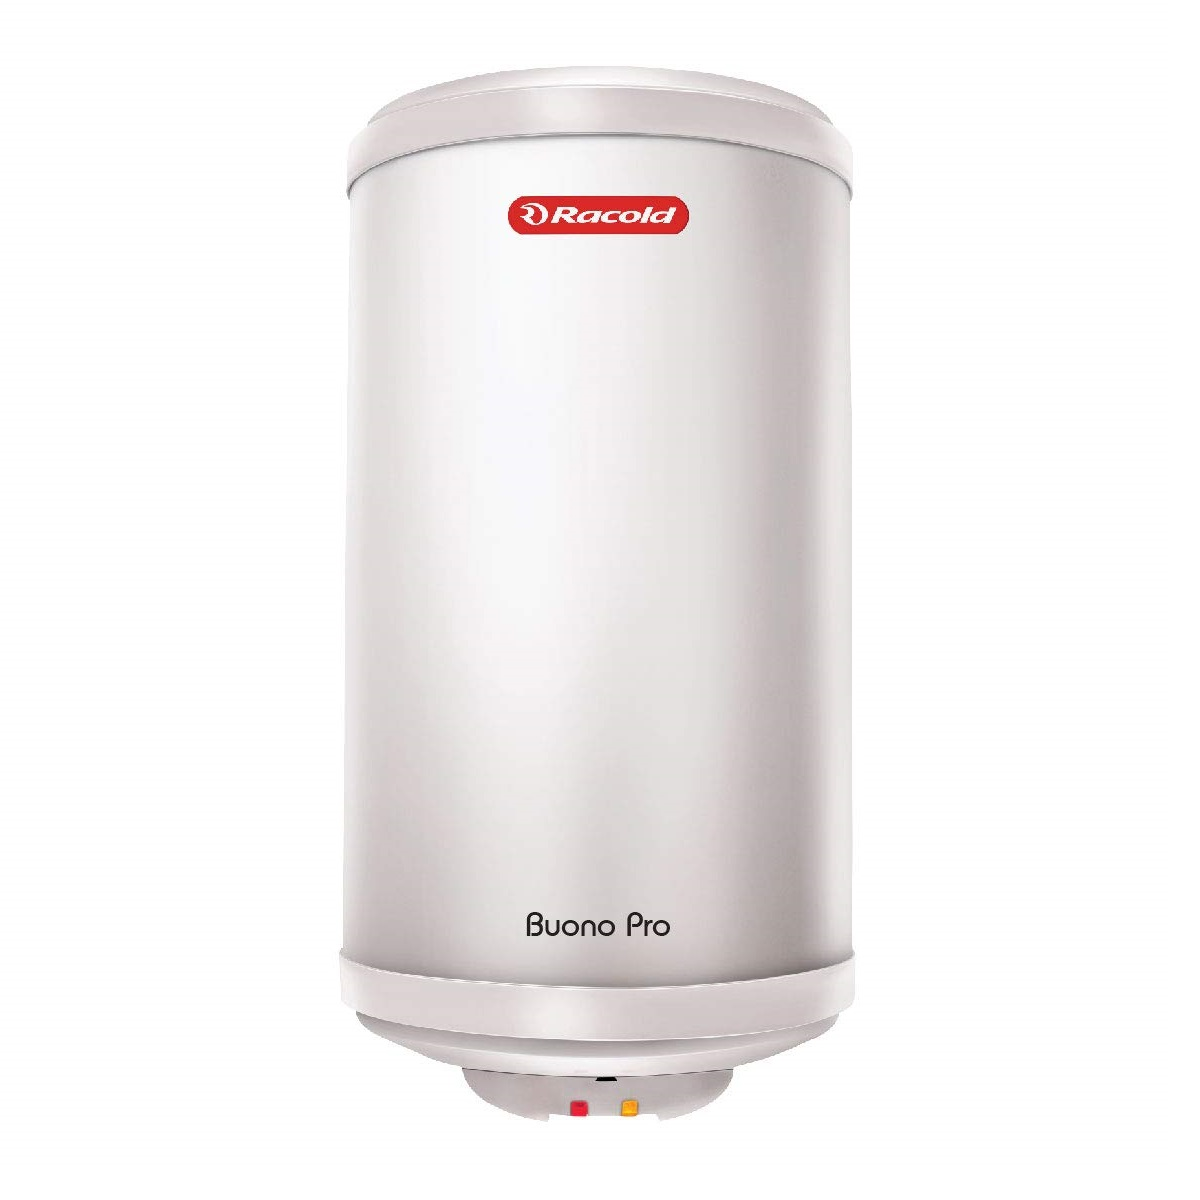 Racold Buono Pro 15 Litre Storage Water Geyser